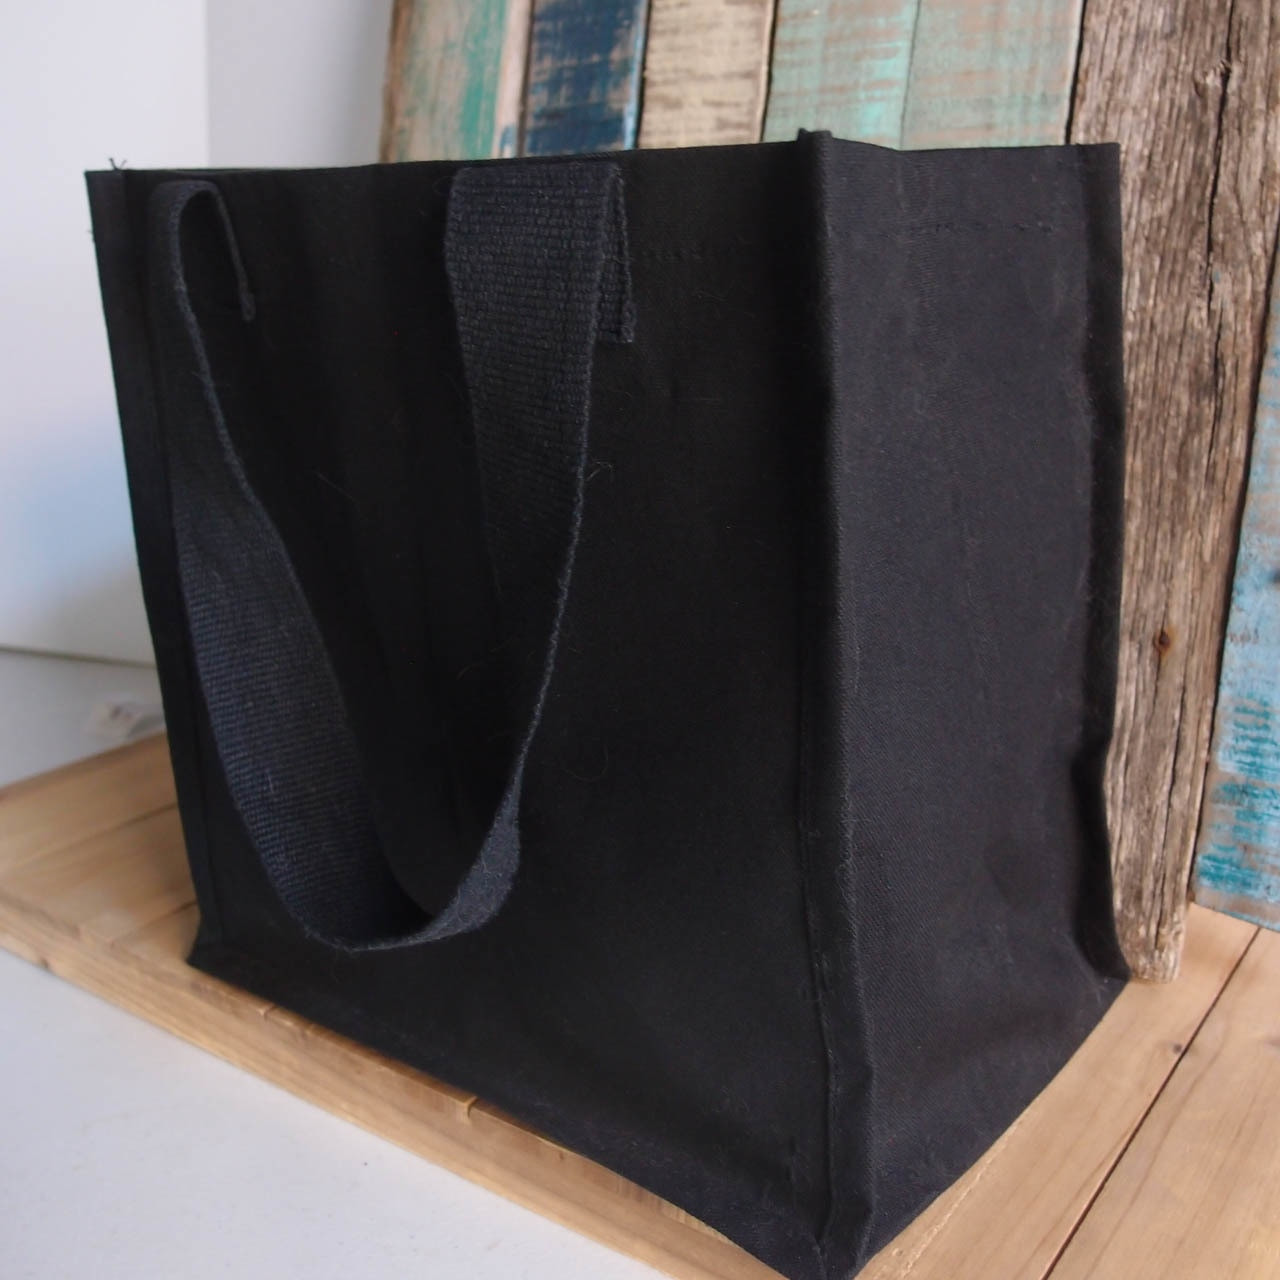 """Side view of Black Canvas Shopping Tote Bag 12"""" W x 12"""" H x 7 3/4"""" Gusset B890-89, Wholesale Black Canvas Tote Bags, Wholesale Cotton Bags 